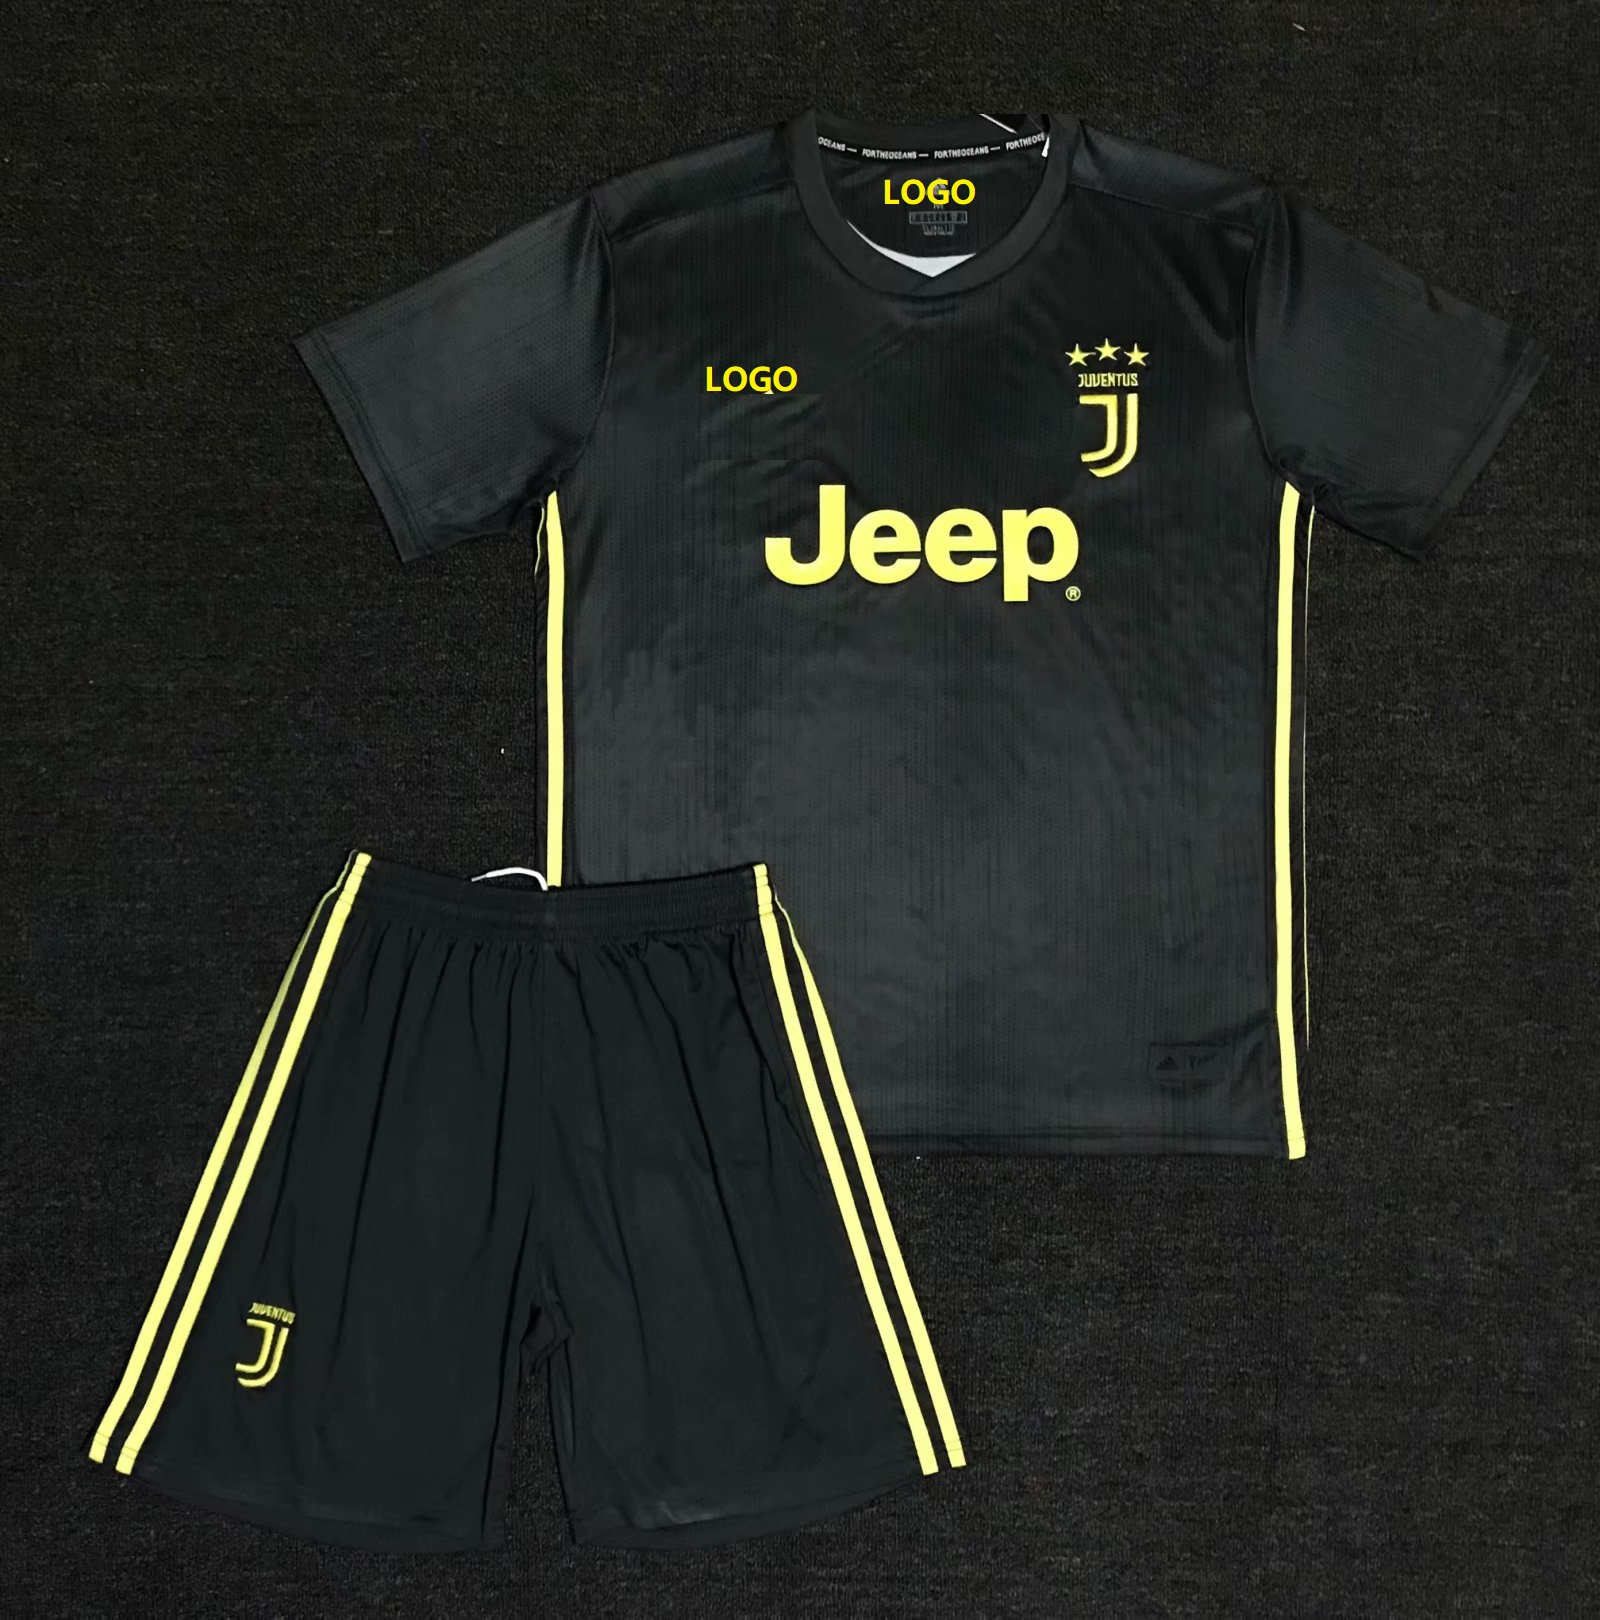 b43e49614 2018/19 AAA Men Juventus Away Soccer Uniform Adult Football Kits Customize  Name Number